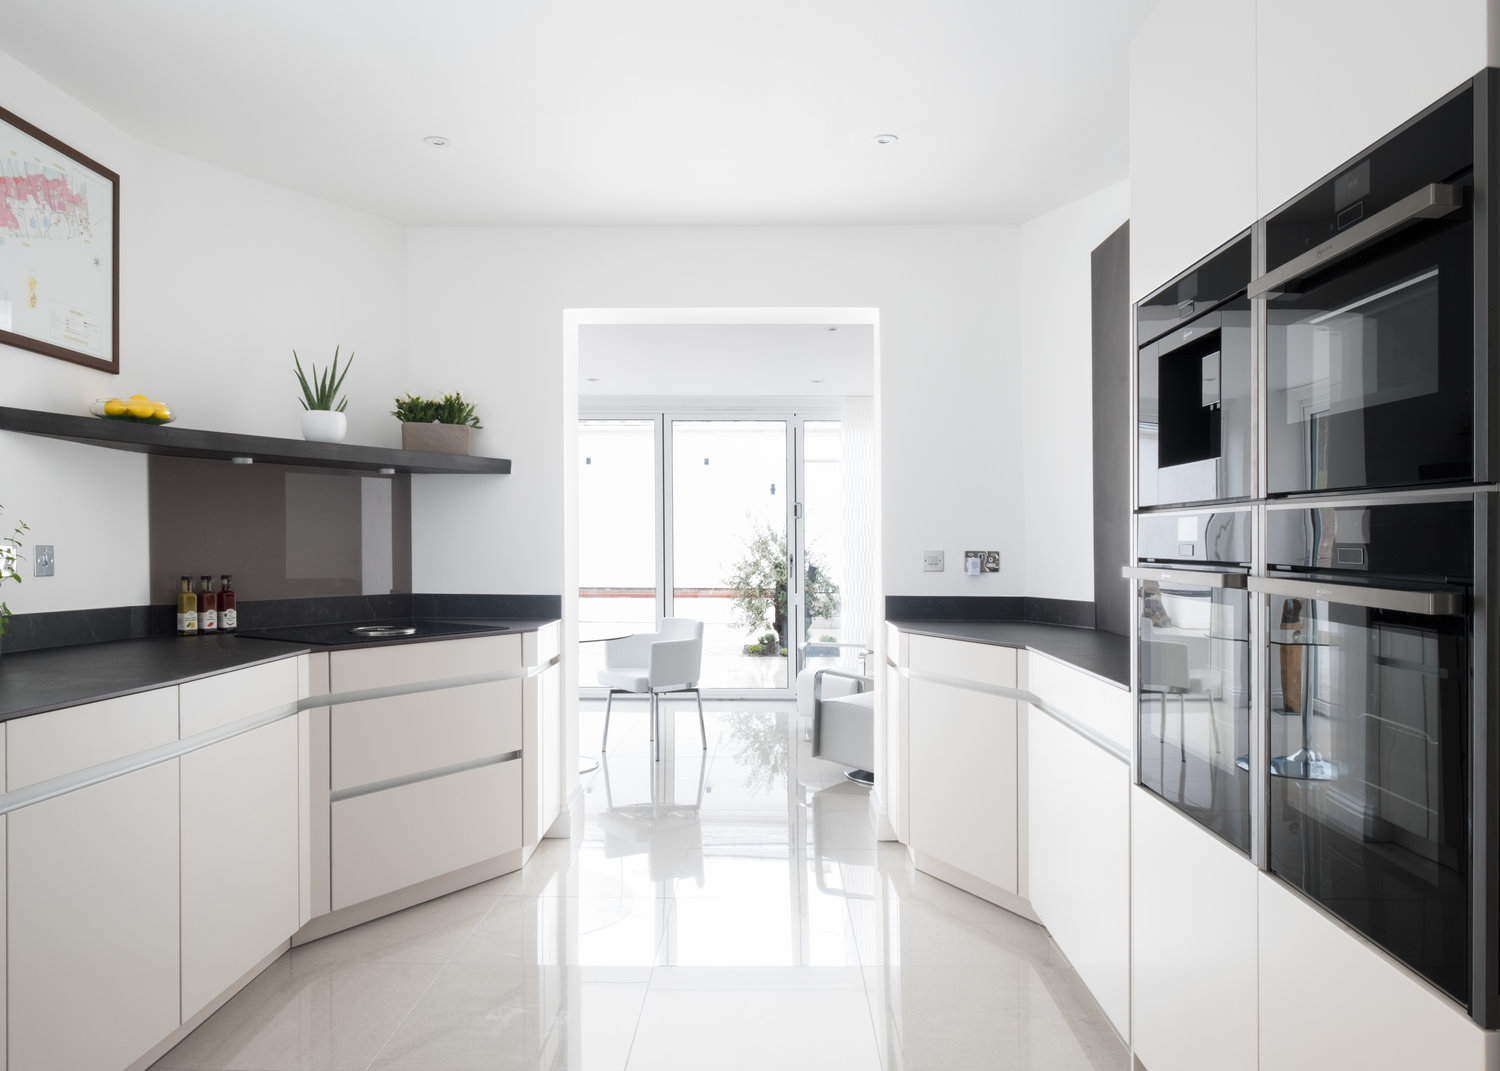 Contour Latest News From Contour Kitchens What Are The Best